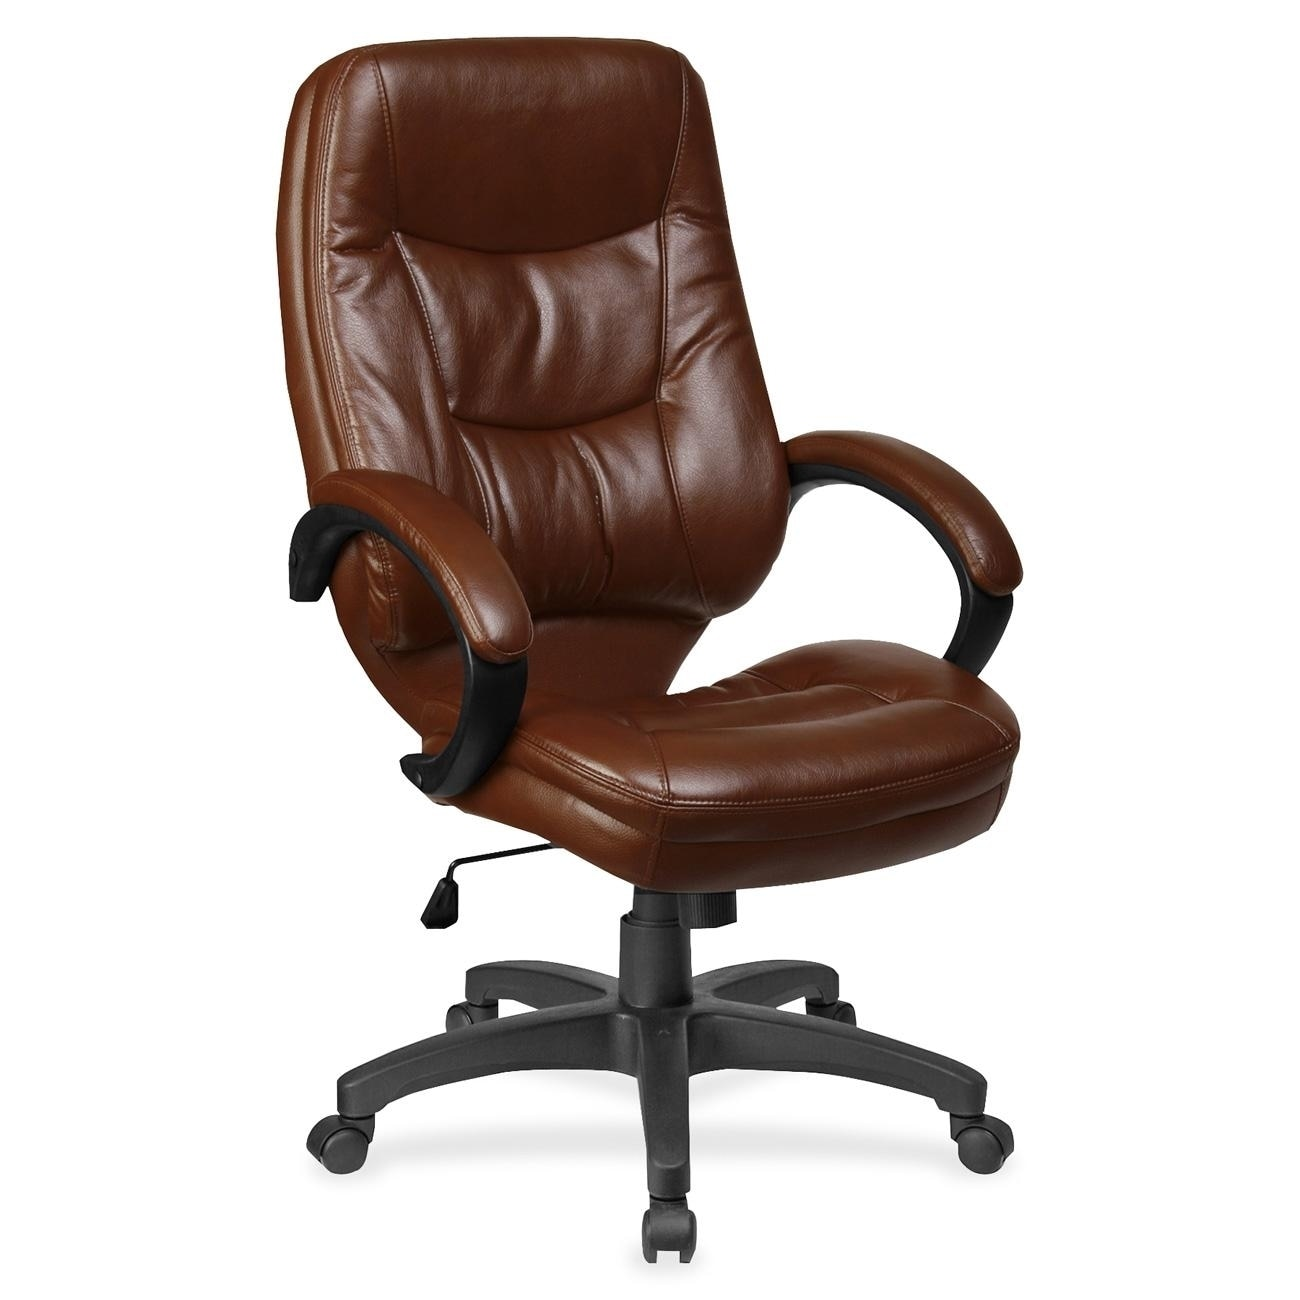 Buy High Back, Leather Office U0026 Conference Room Chairs Online At  Overstock.com | Our Best Home Office Furniture Deals